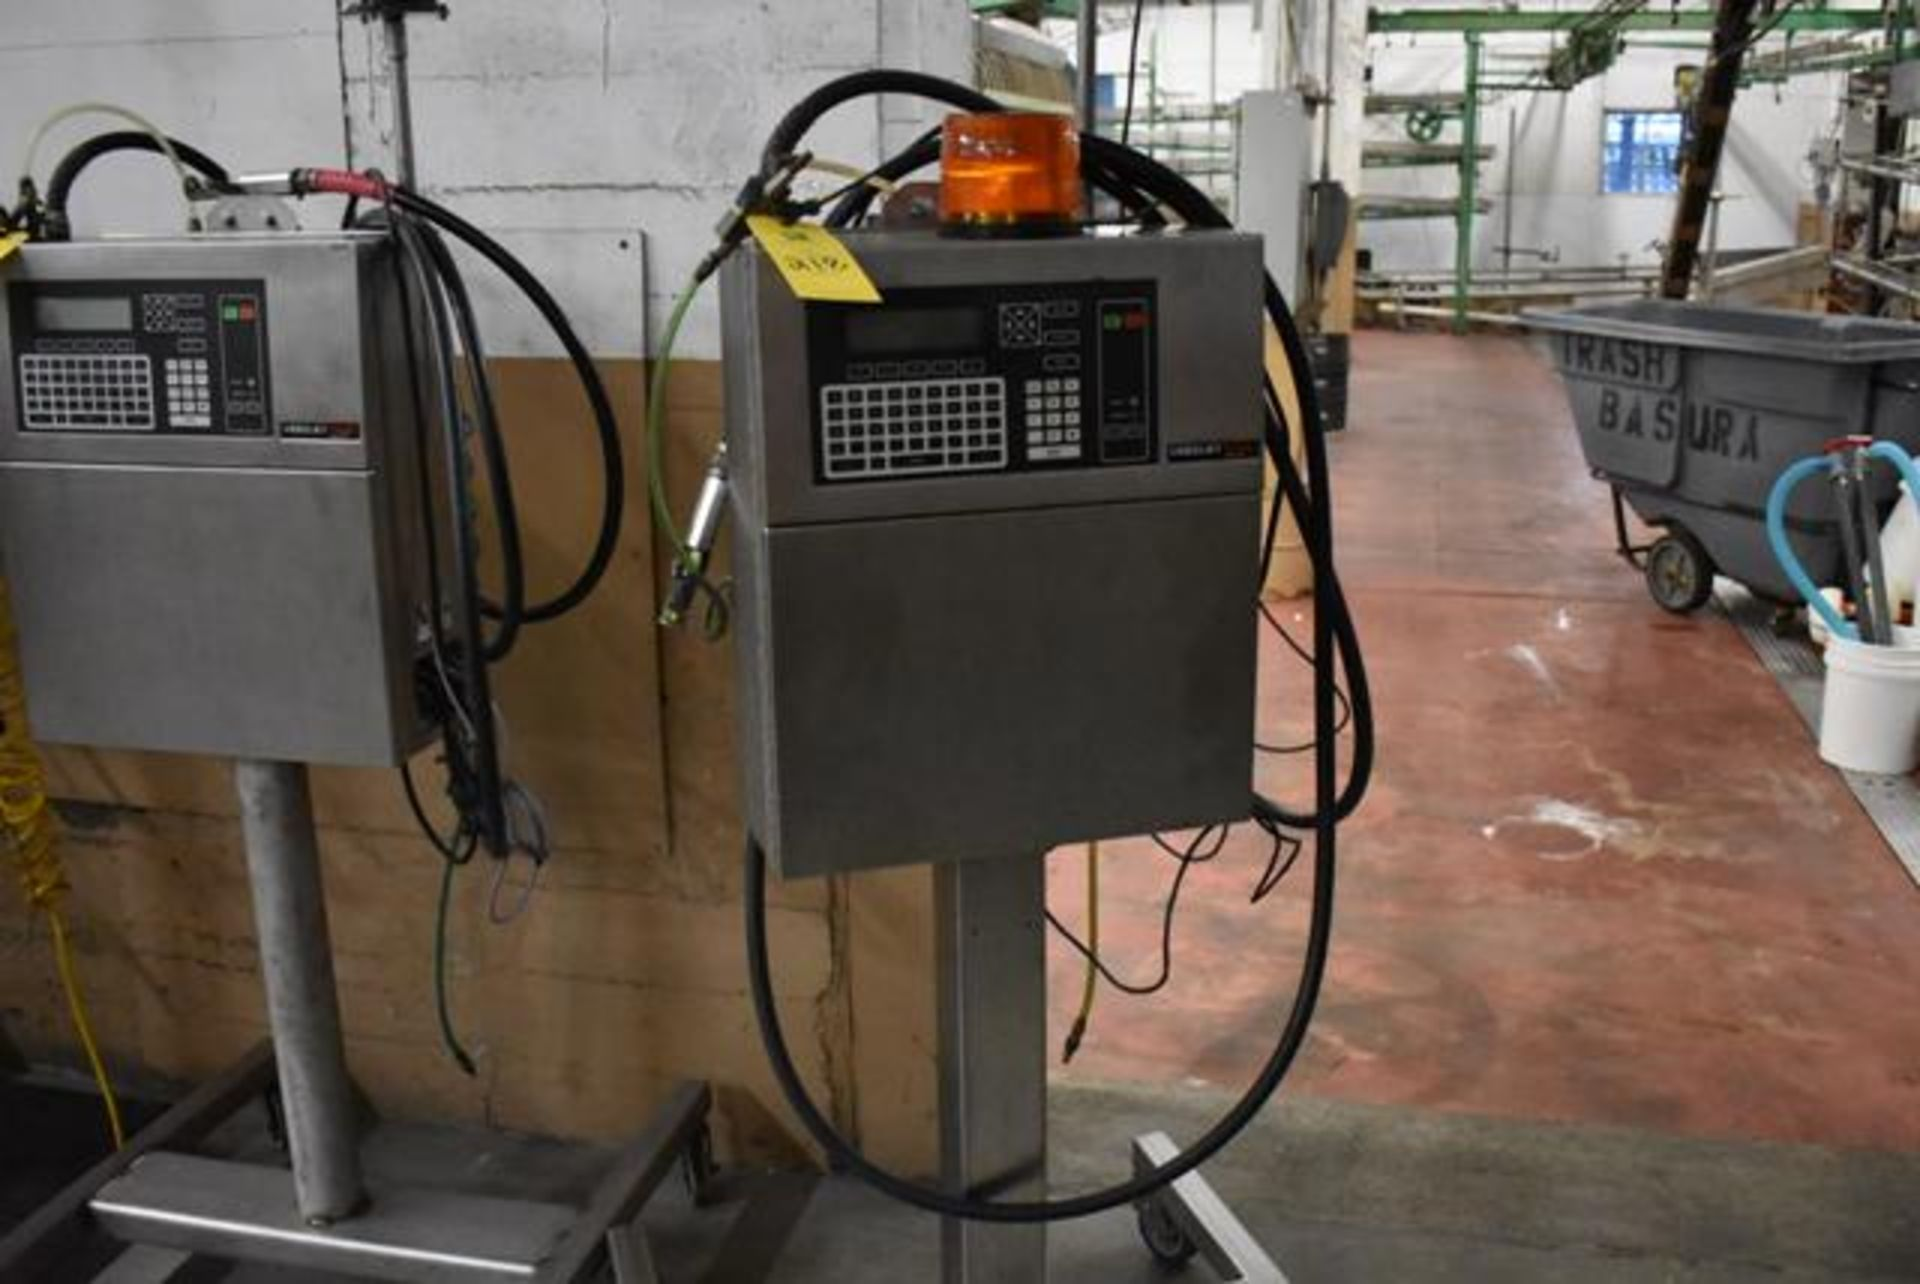 Lot 218 - VideoJet Excel Series 100 Includes SS Stand, Loading Fee: $50